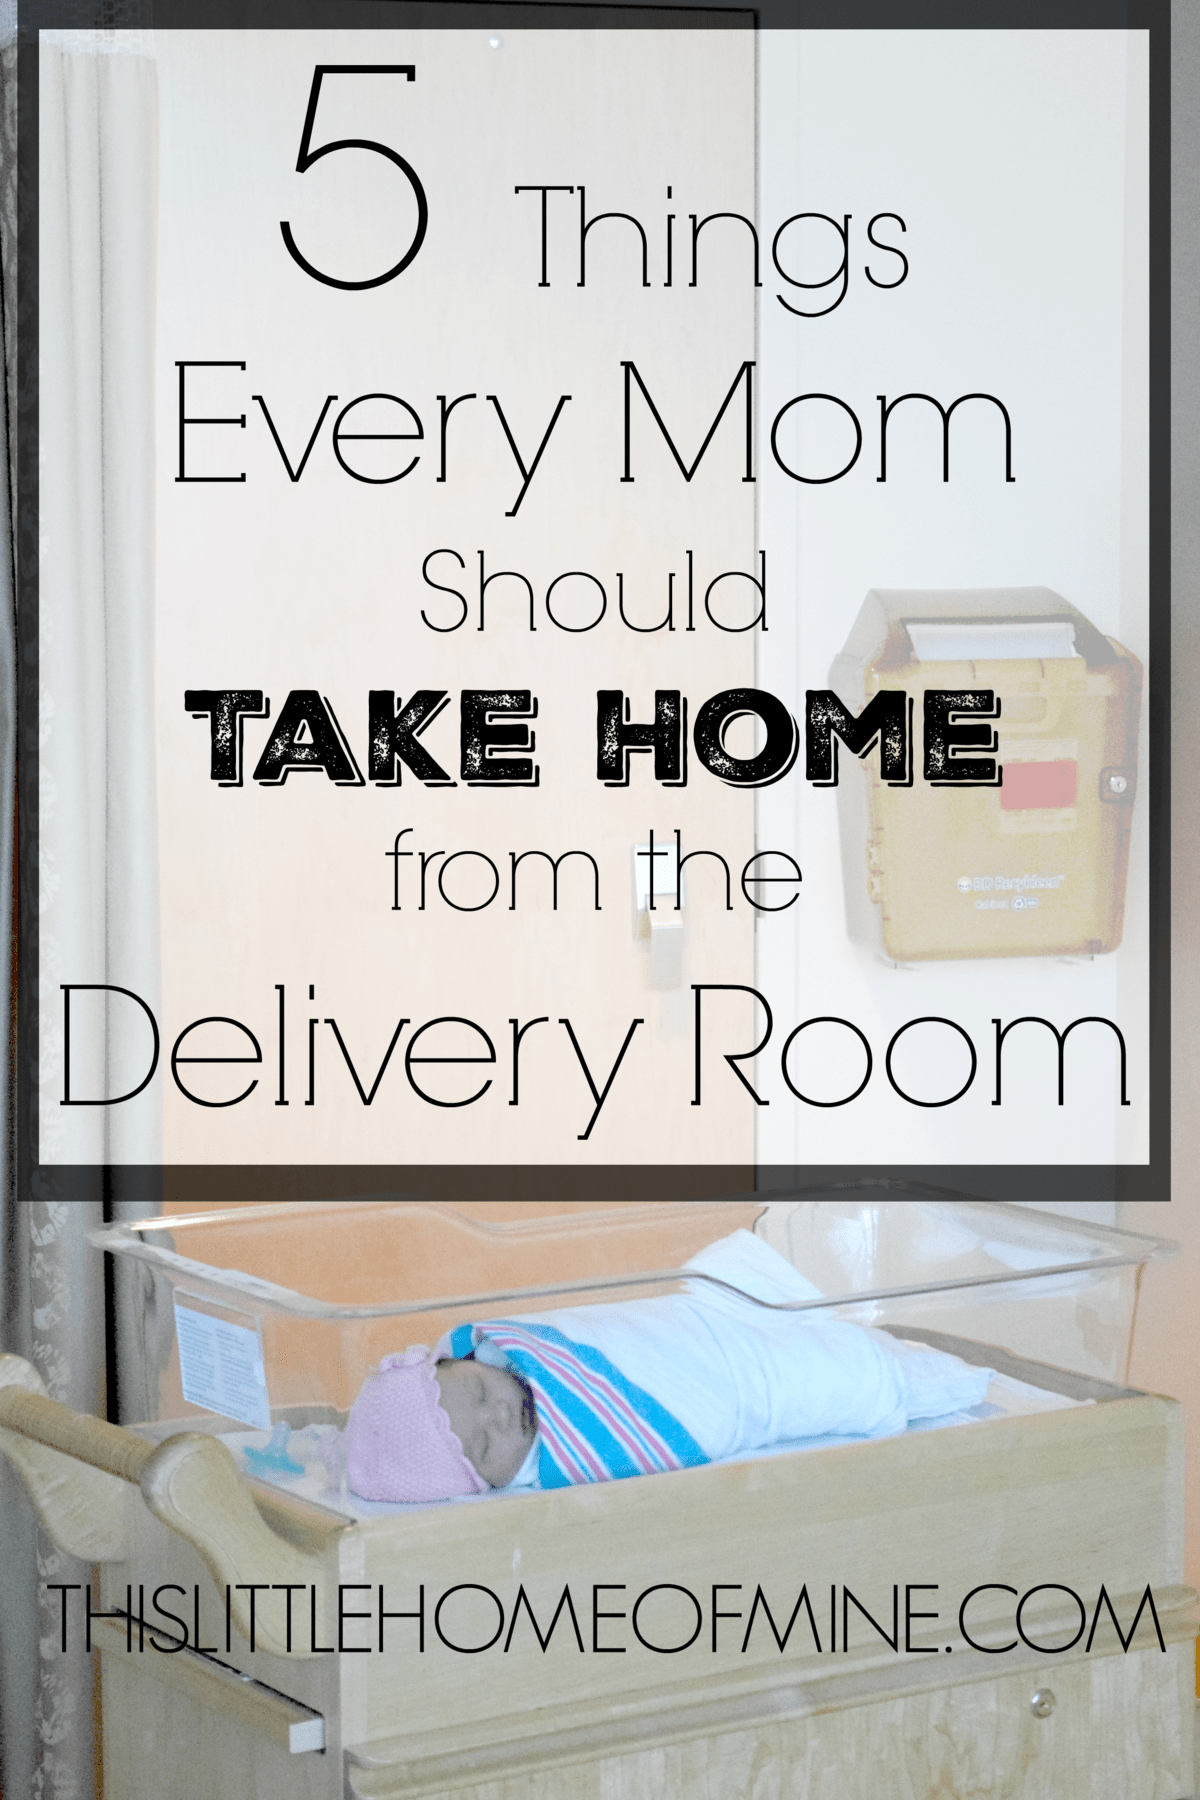 Five Things to Take Home from the Delivery Room